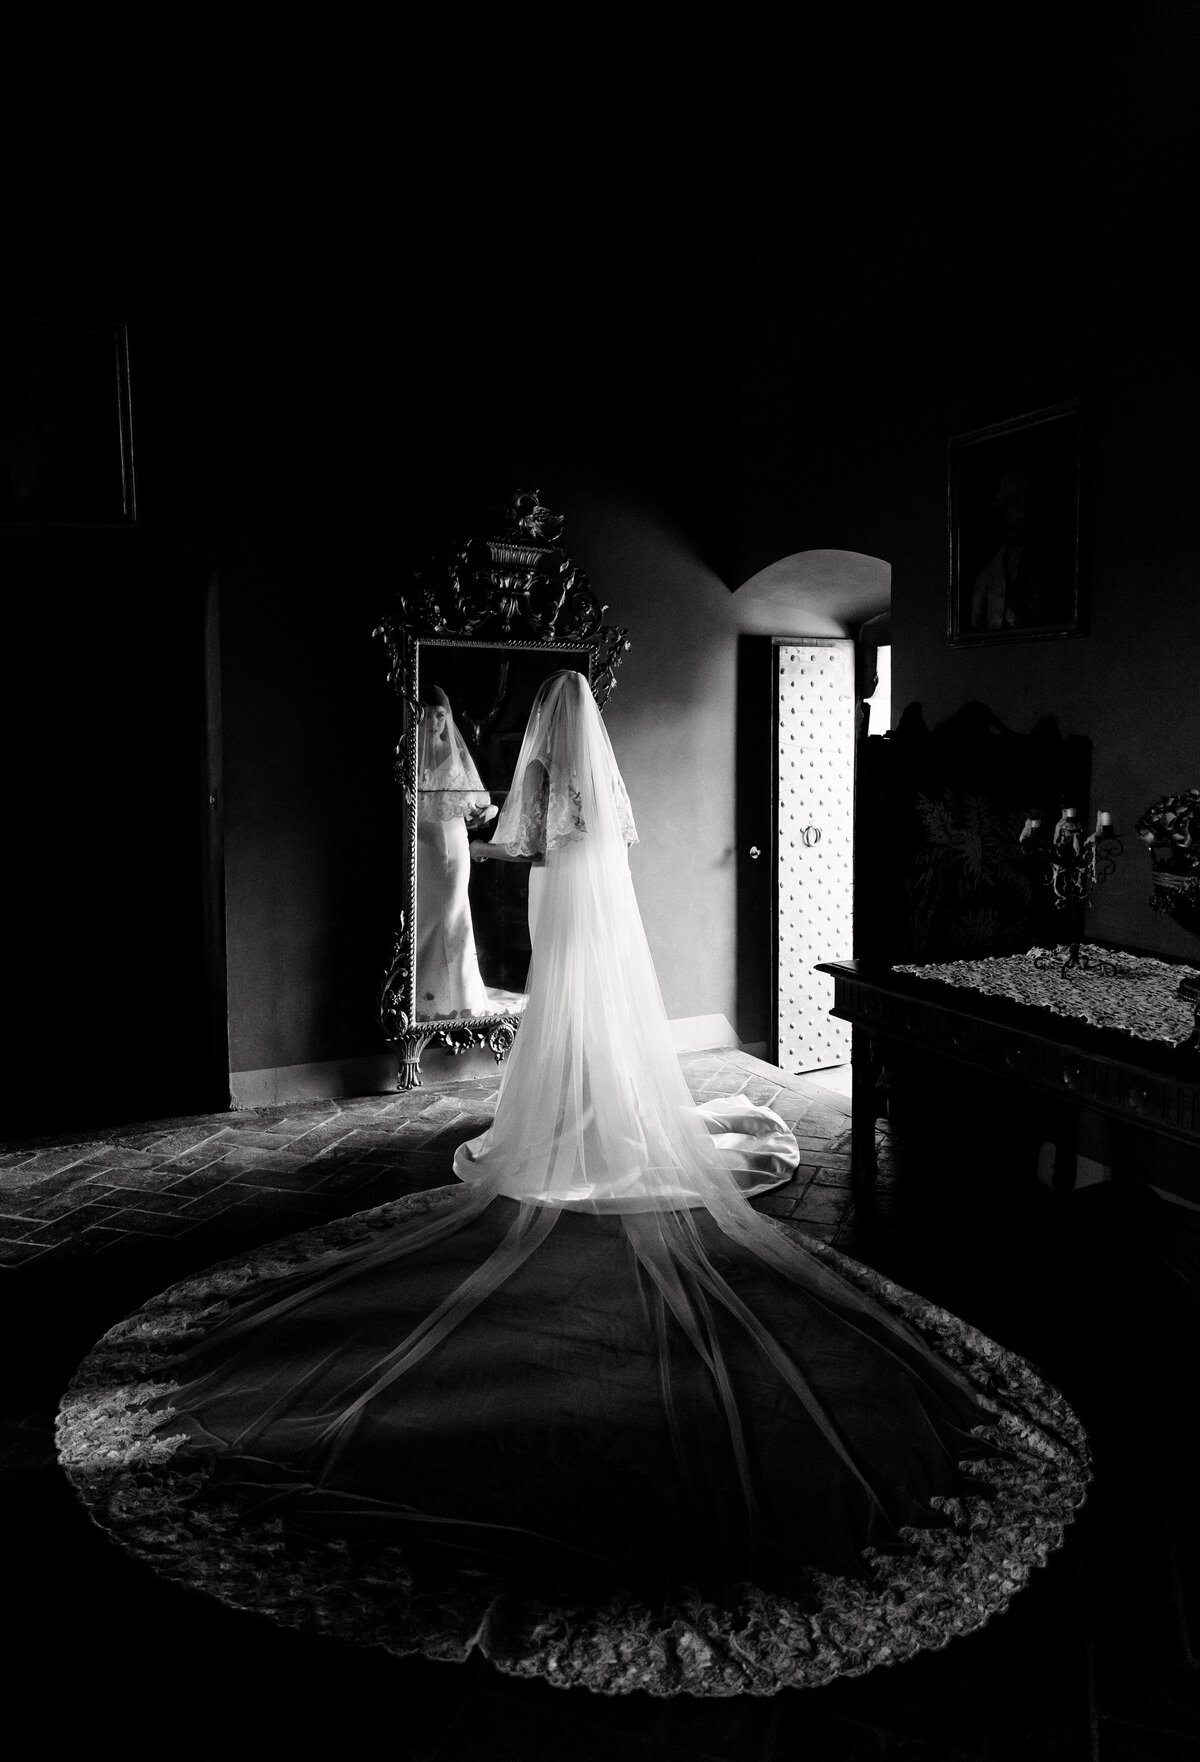 Tuscany_Italy_0136_Helga_Marc_Wedding_1579